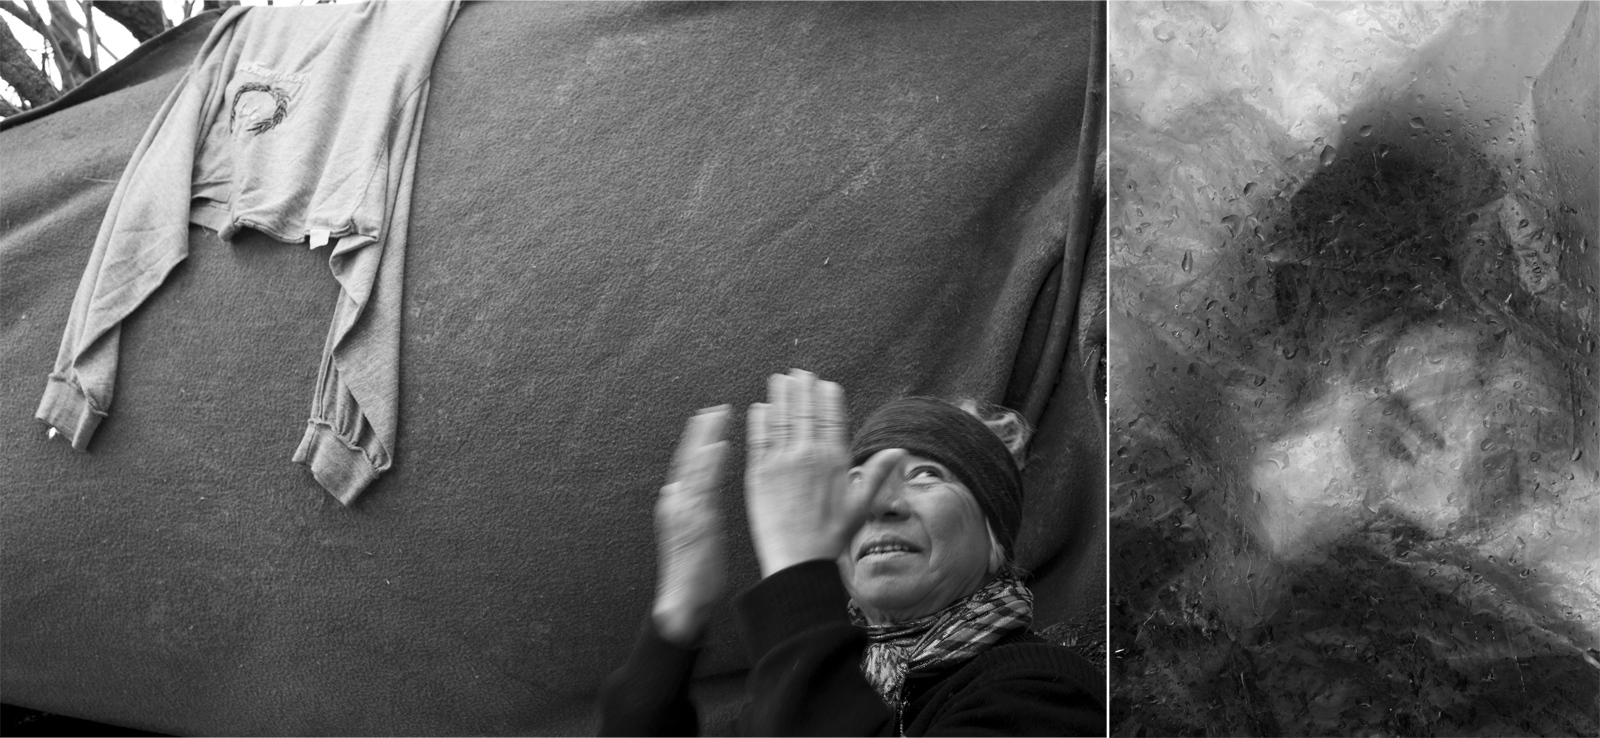 Art and Documentary Photography - Loading 04_copia.jpg